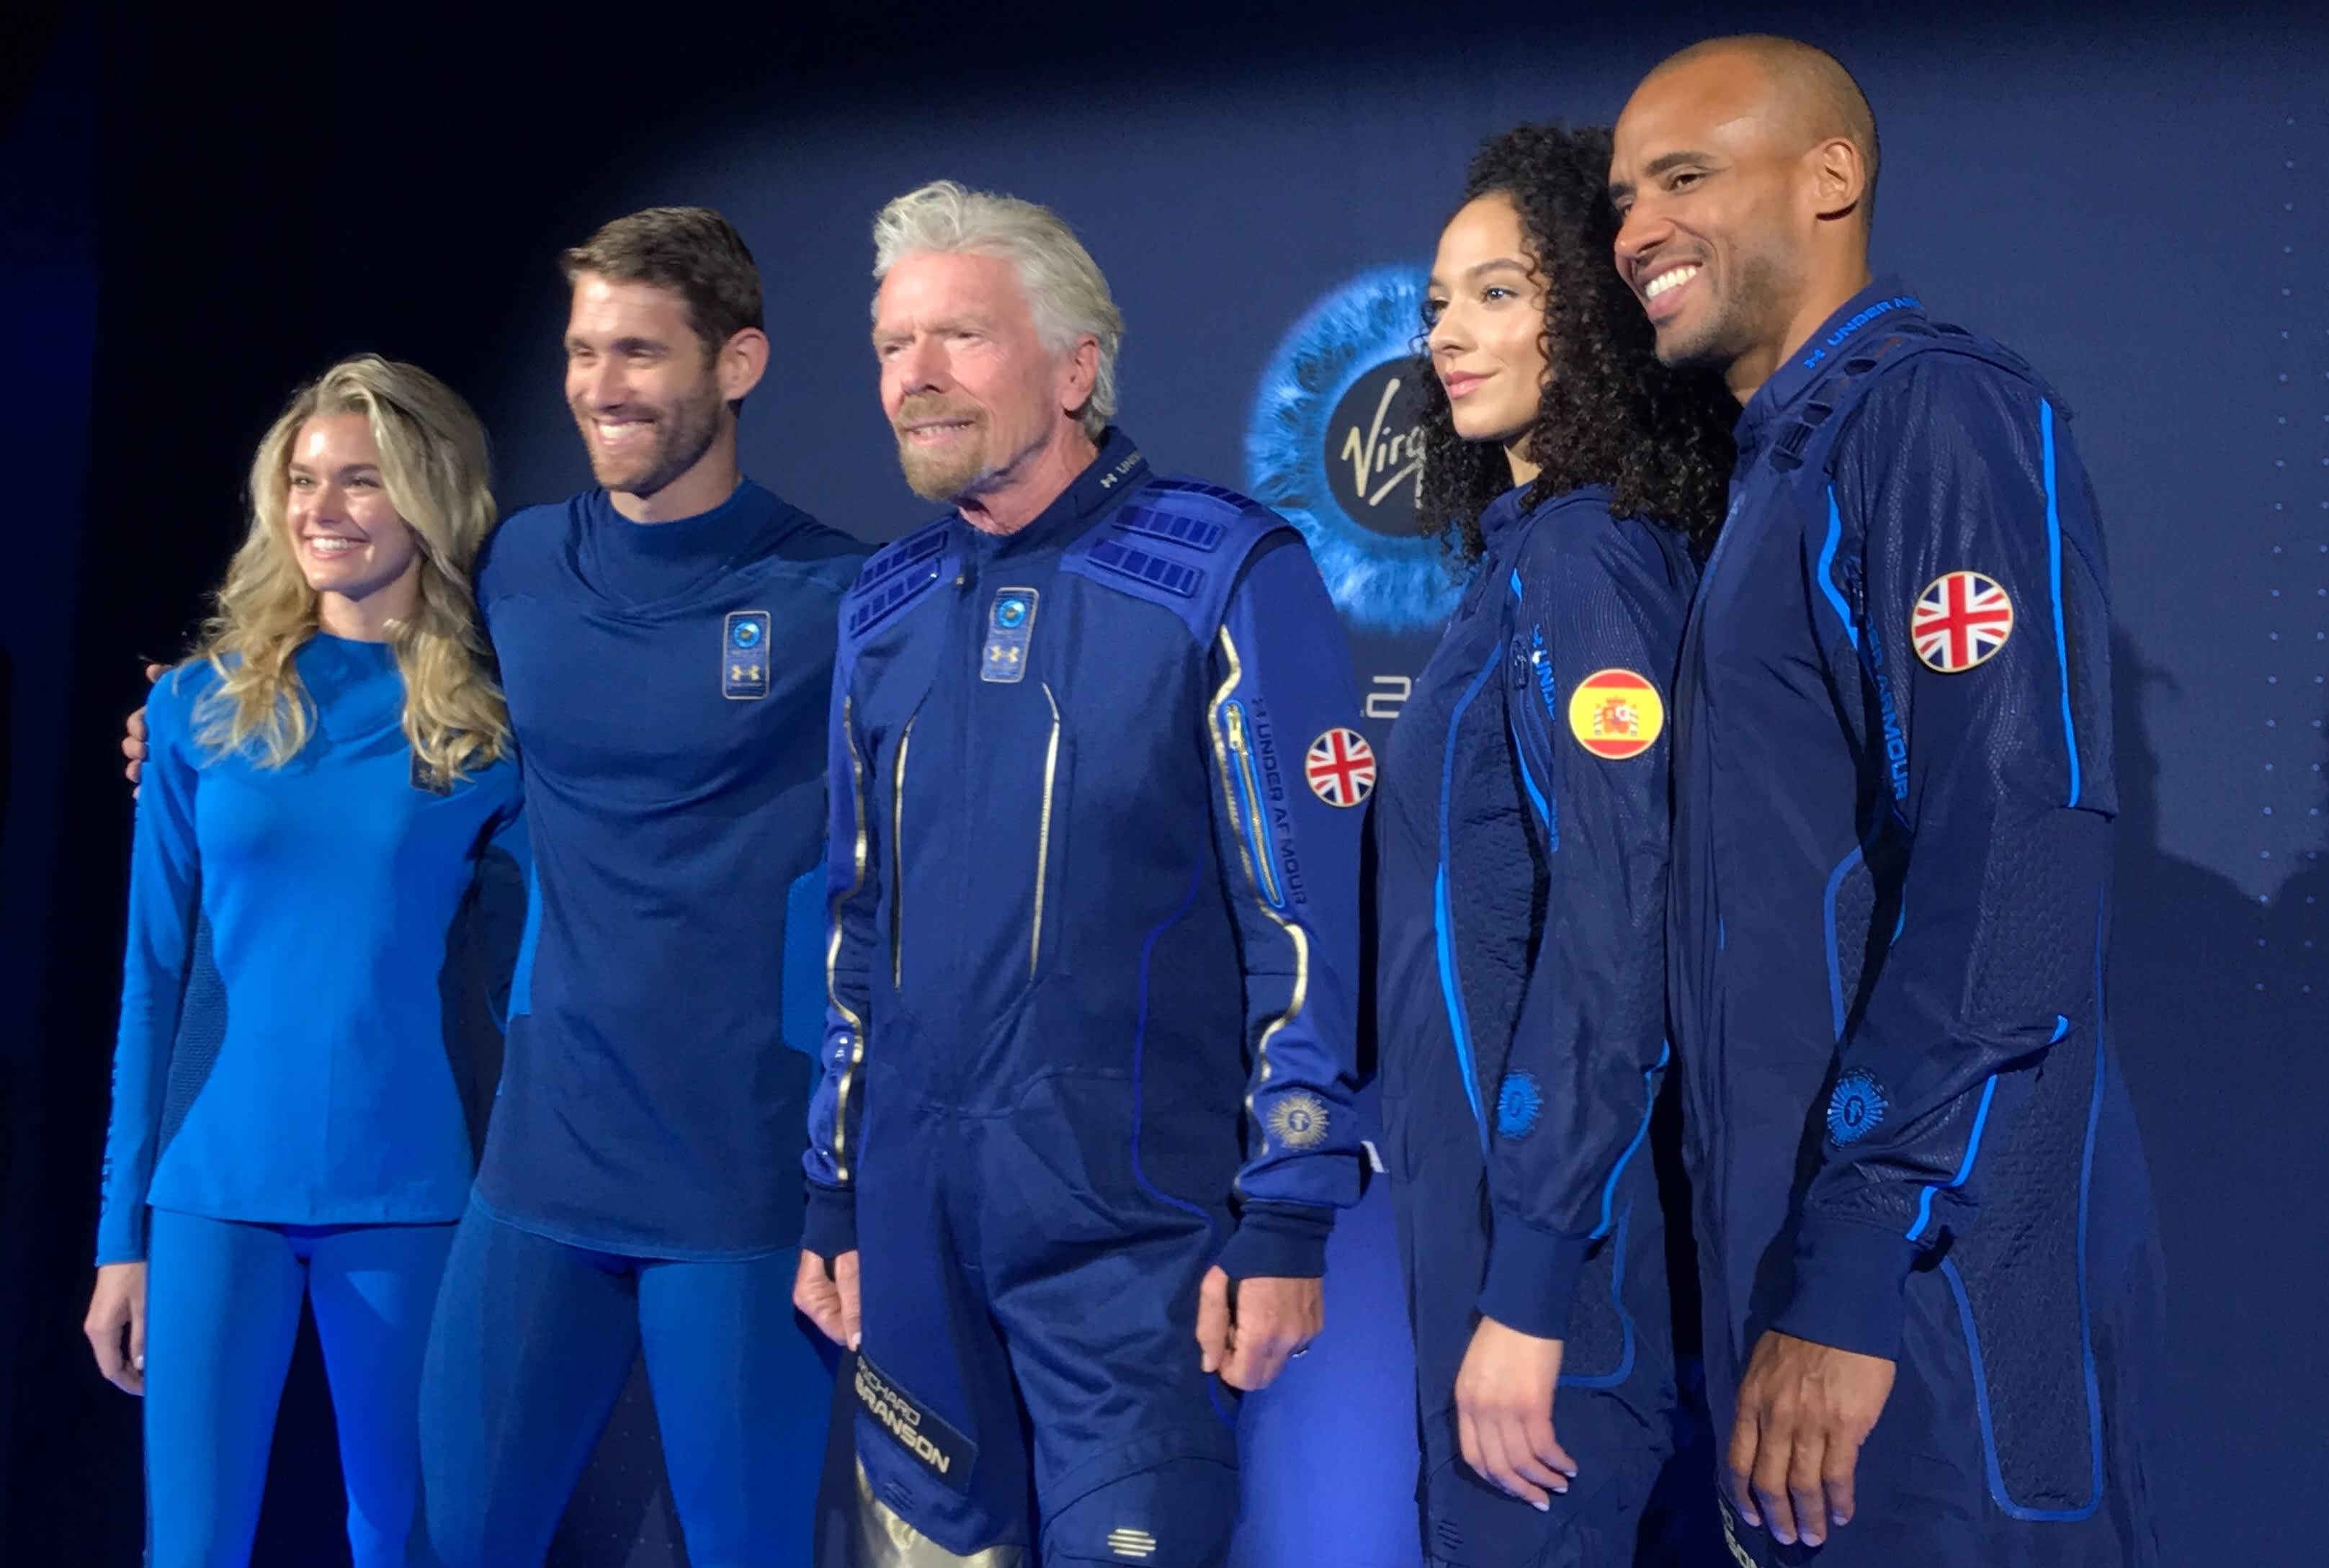 Virgin Galactic and Under Armour unveil spacesuits for the first space tourists to wear next year